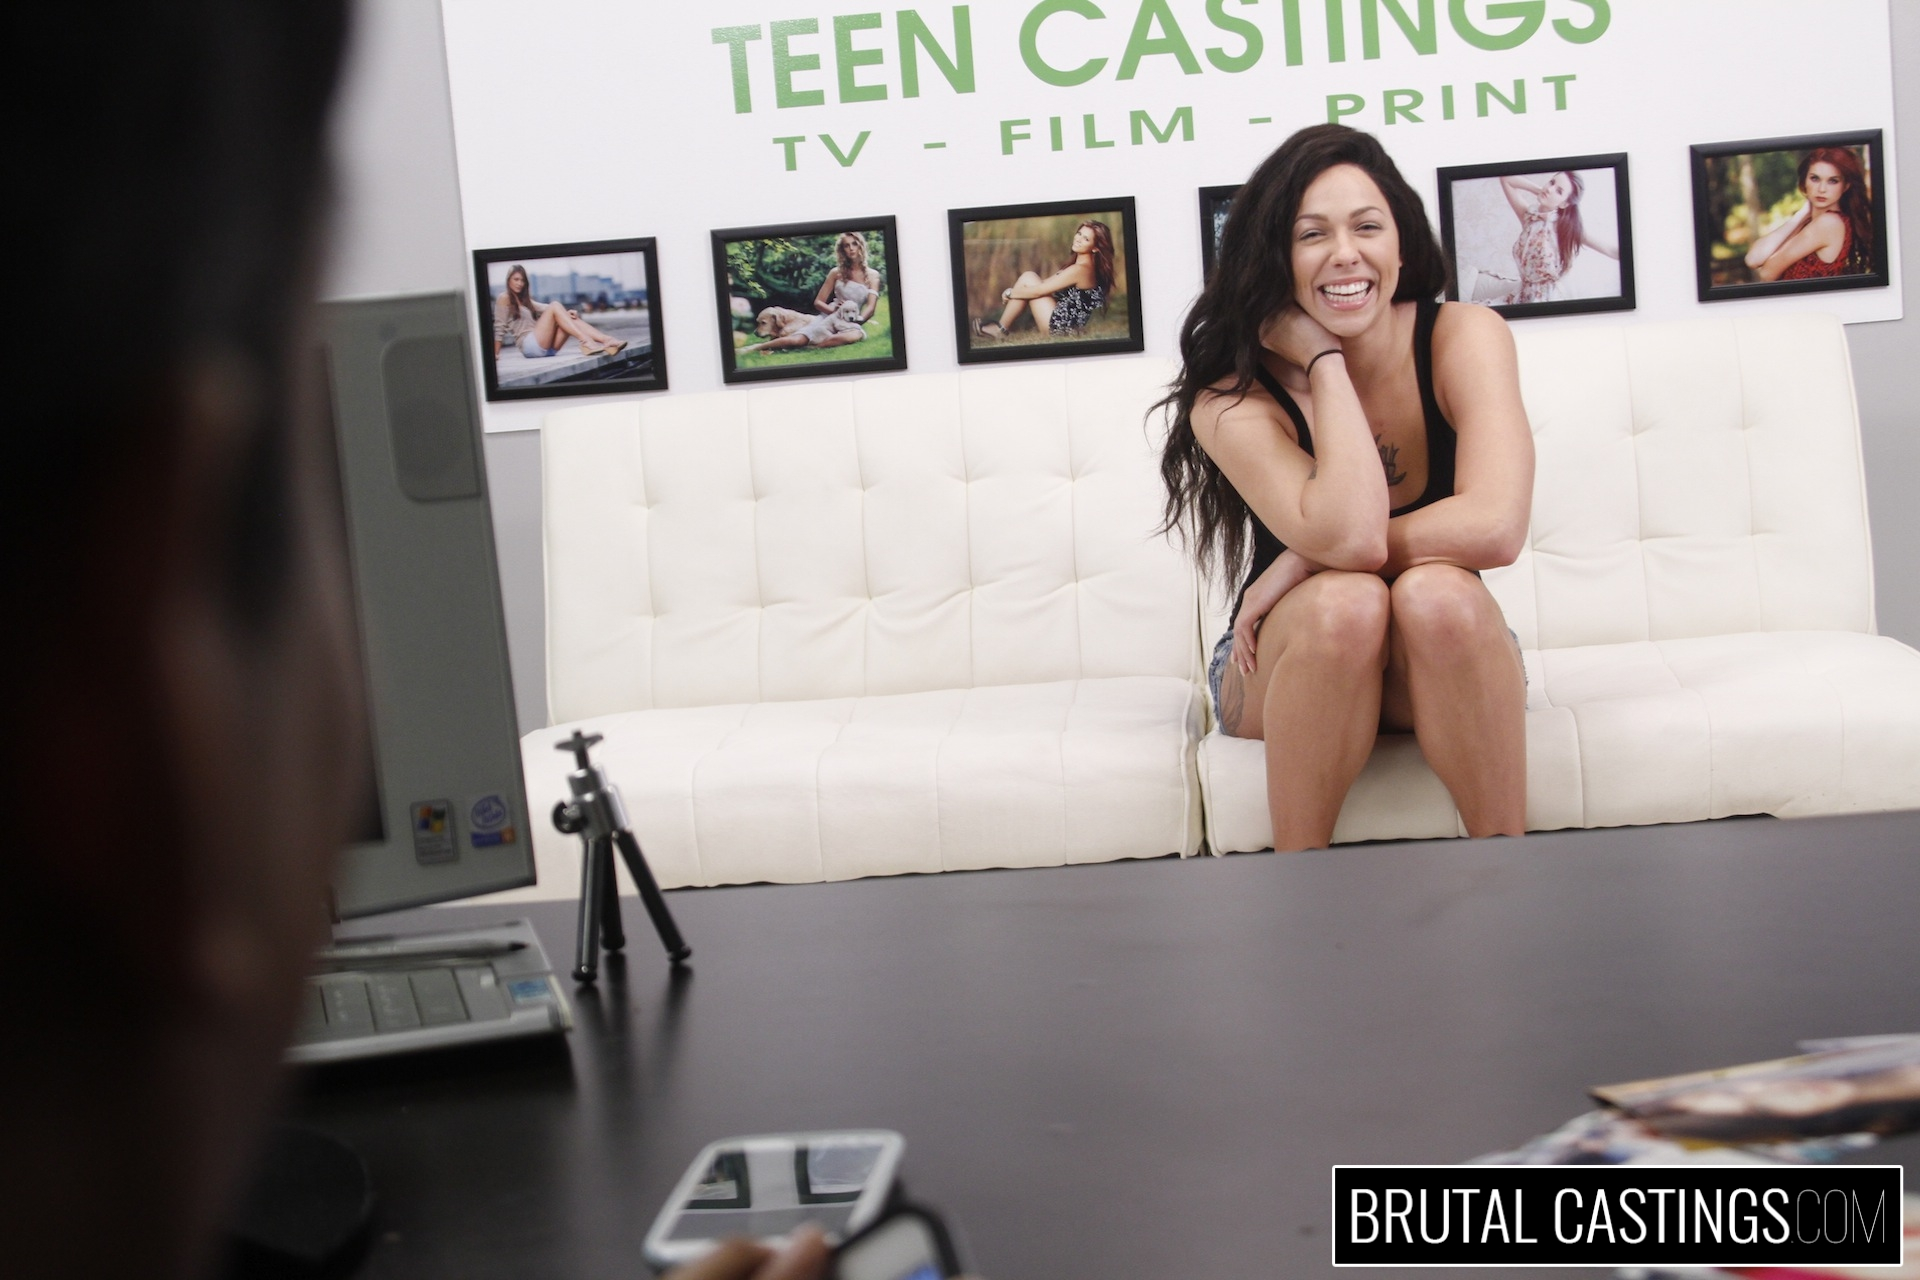 Bdsm casting  with harlow harrison. Harlow Harrison, one cool excited chick, just wants to quit her job for high paid modeling gigs with Teen Castings! She'll do anything to get what she wants. She'll even endure BDSM, domination, rope bondage, deepthroat bj, fingering, squirting, spanking, slapping and violent sex.